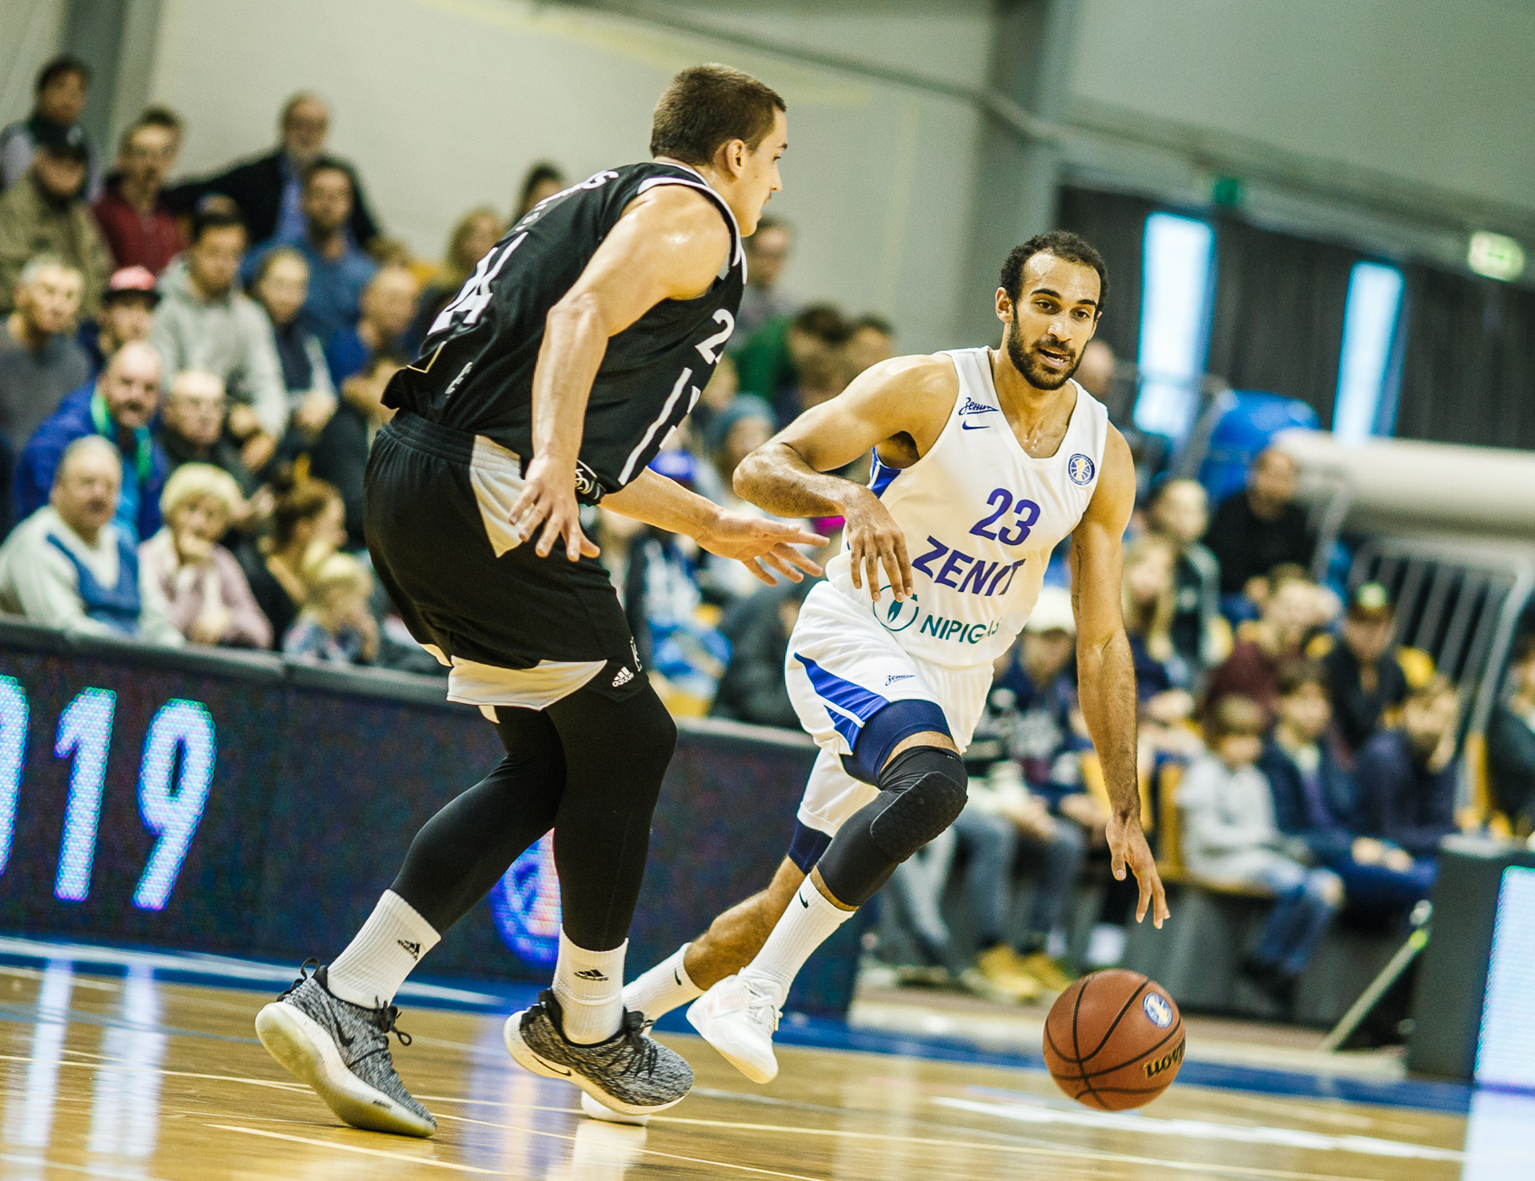 Zenit Grabs 1st Win In Riga